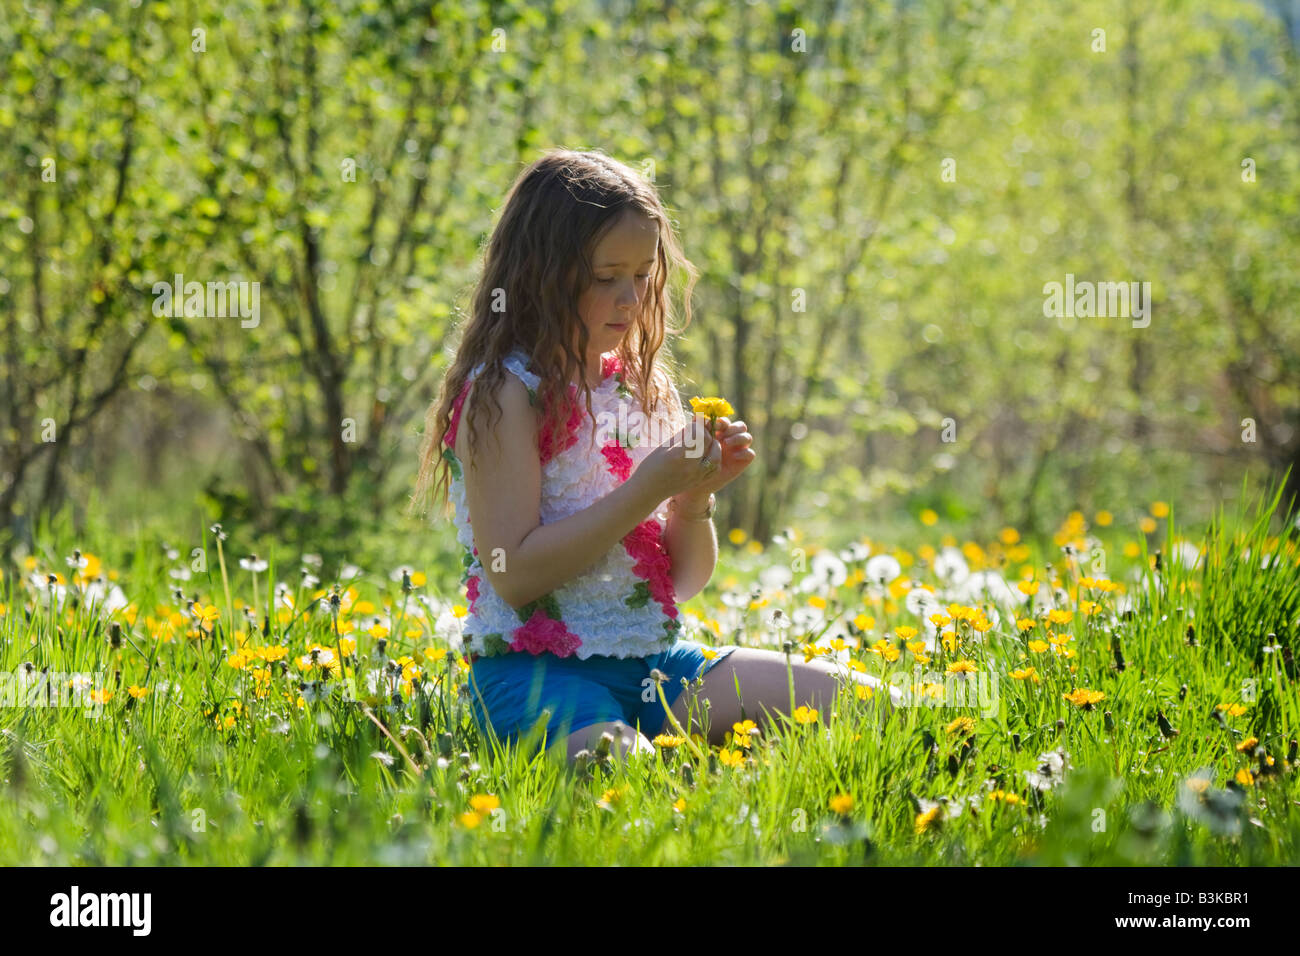 young girl sits among the dandelions on a summer day - Stock Image